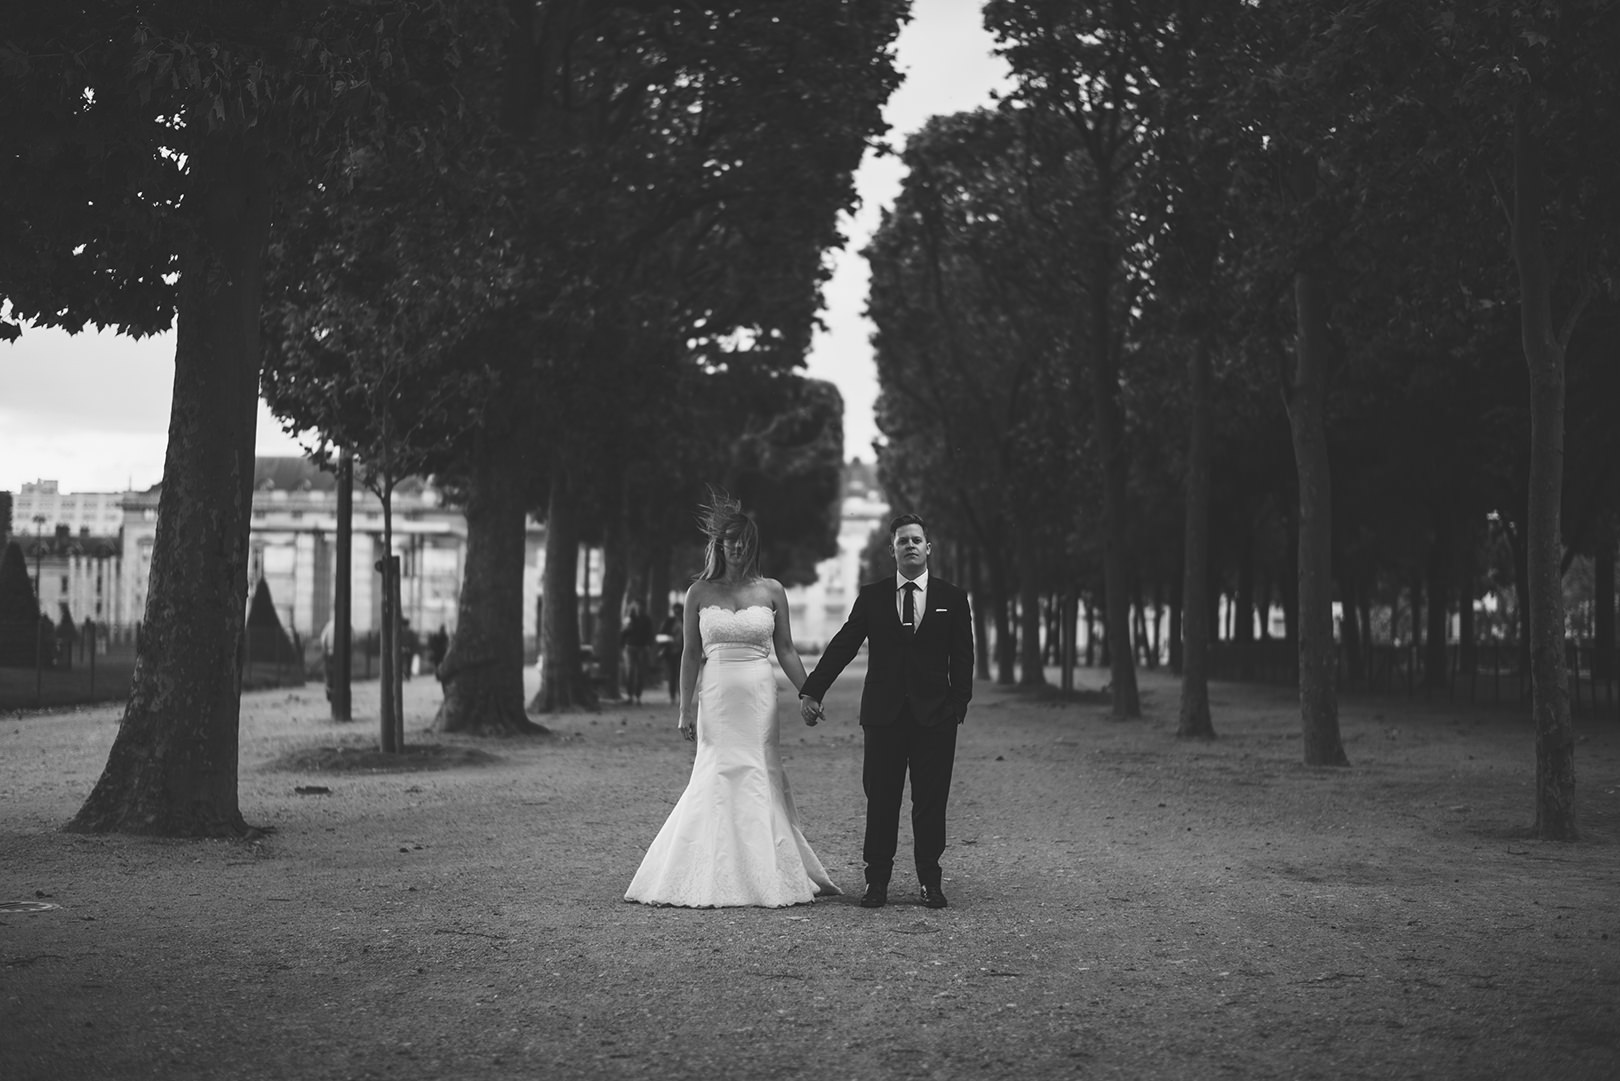 Spain Wedding Photographer - © Dallas Kolotylo Photography - 057